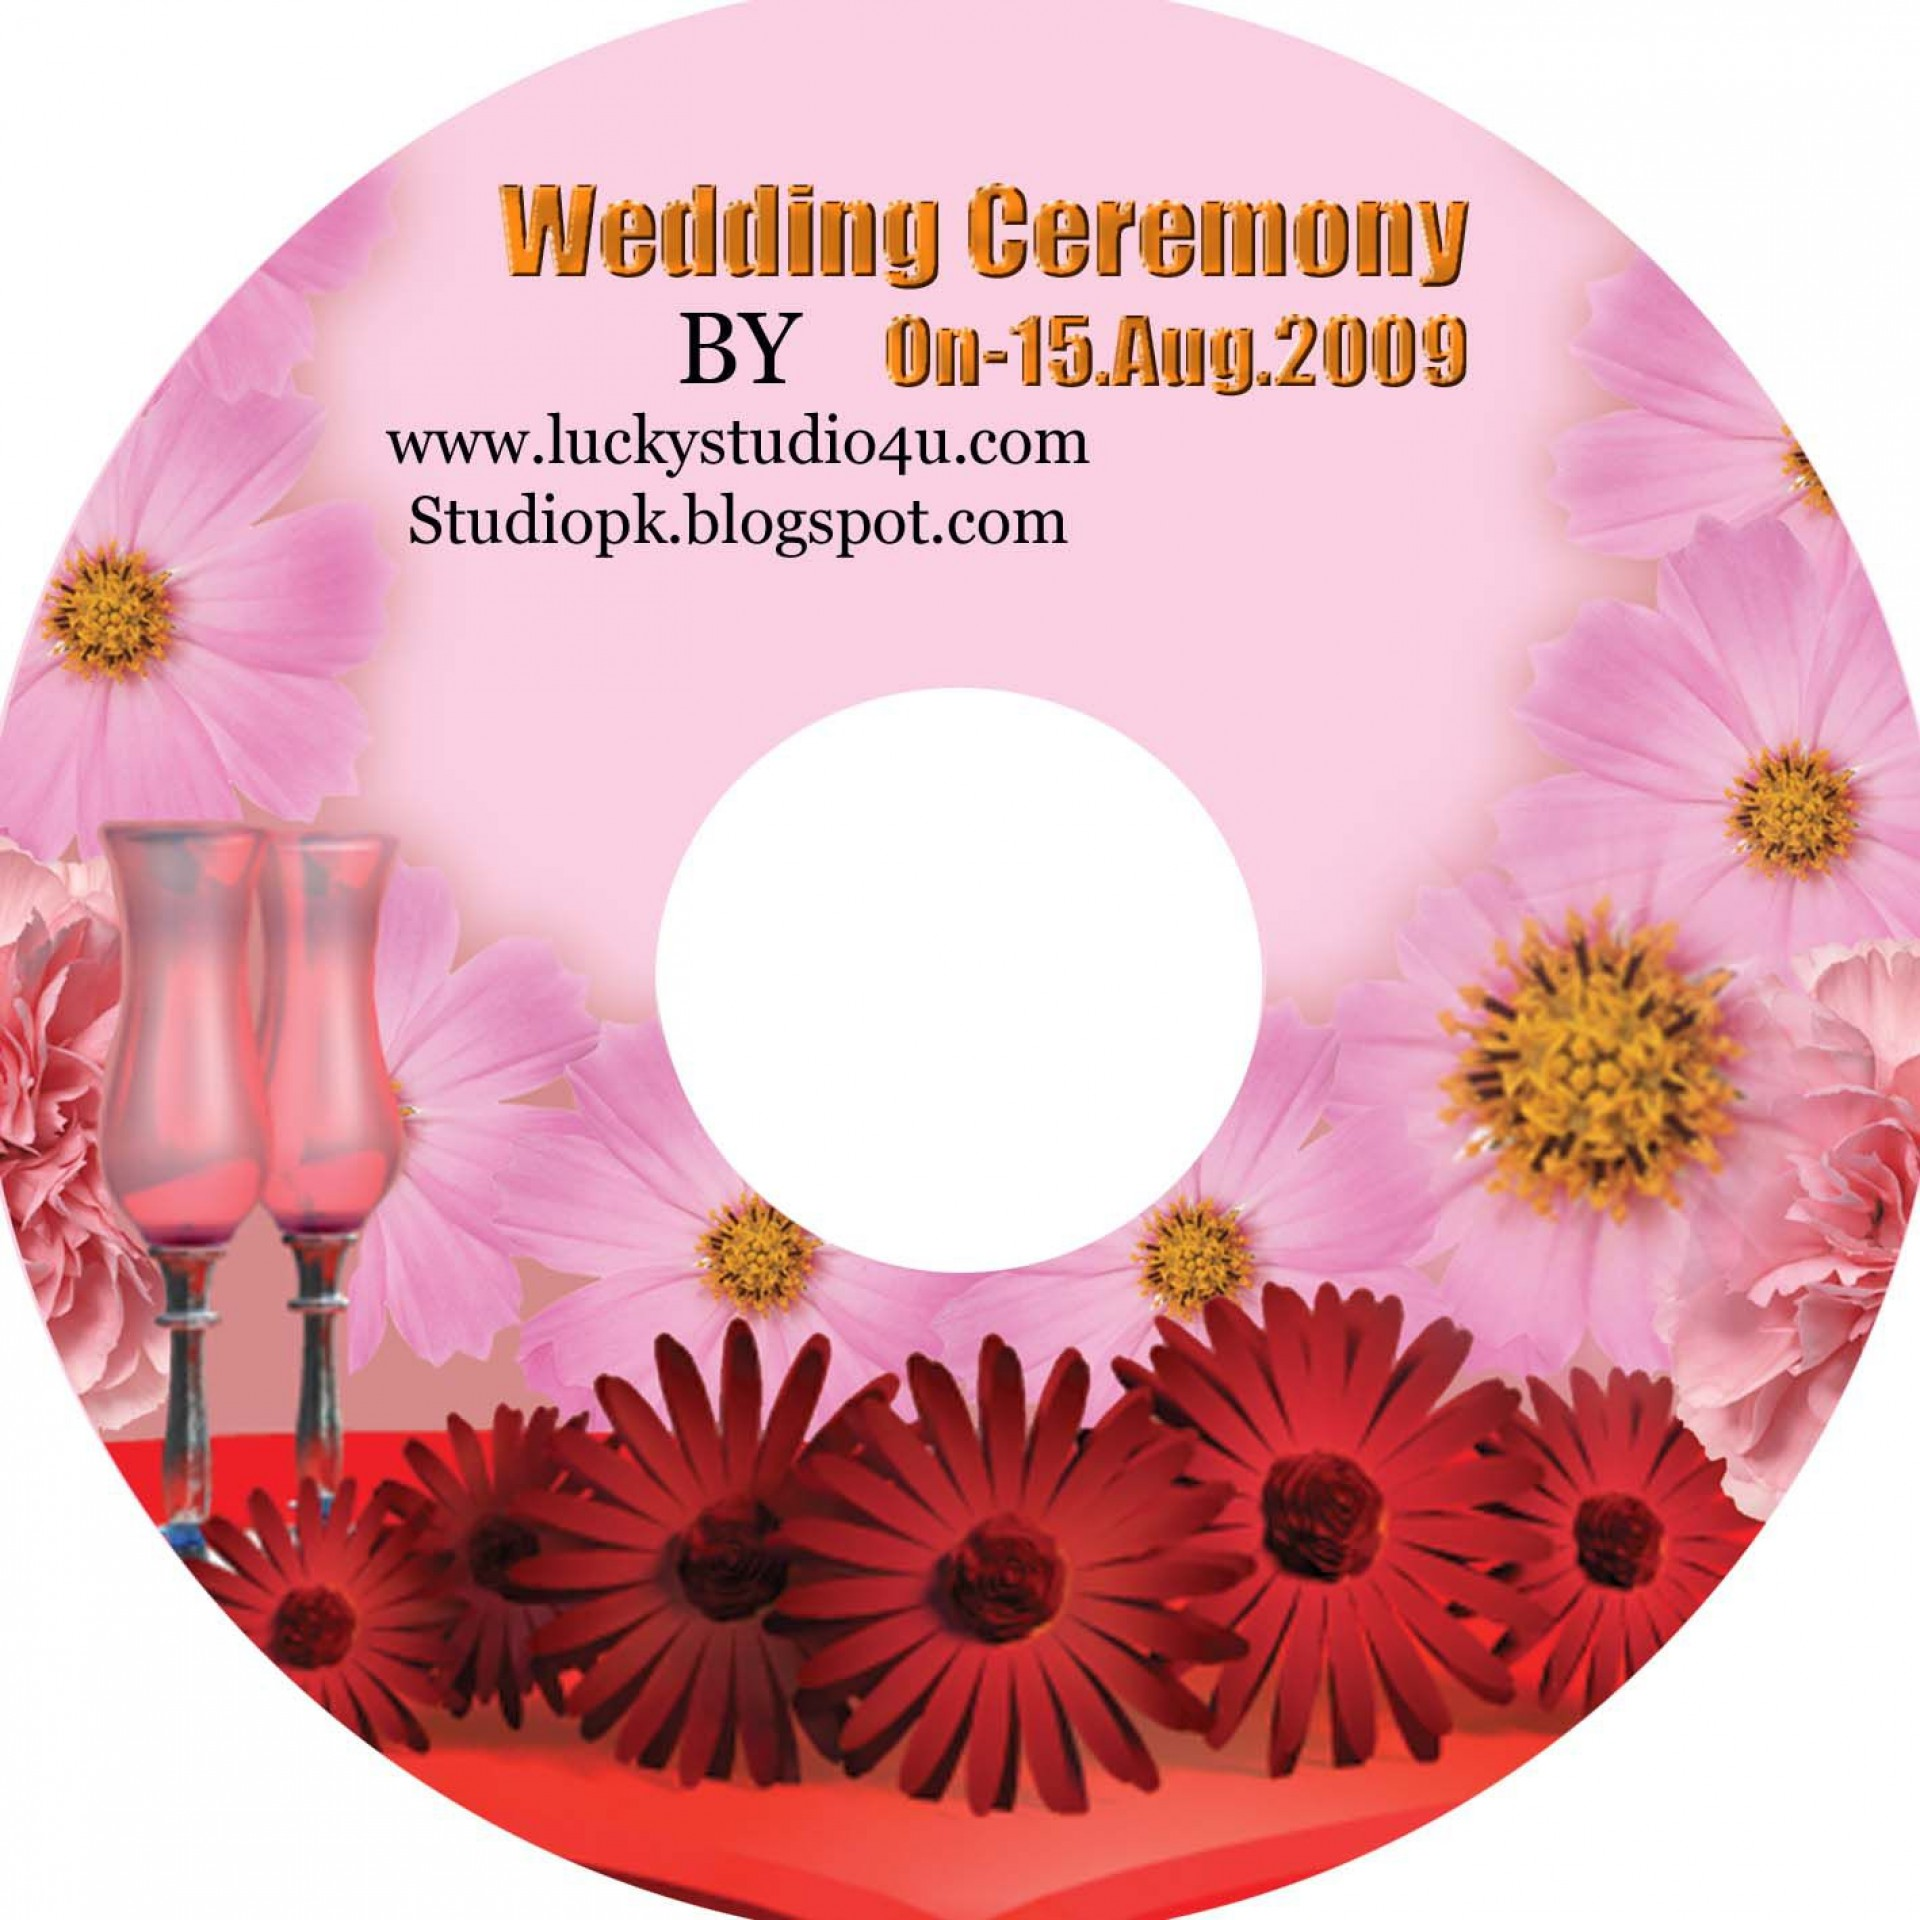 002 Amazing Wedding Cd Cover Design Template Free Download High Resolution 1920